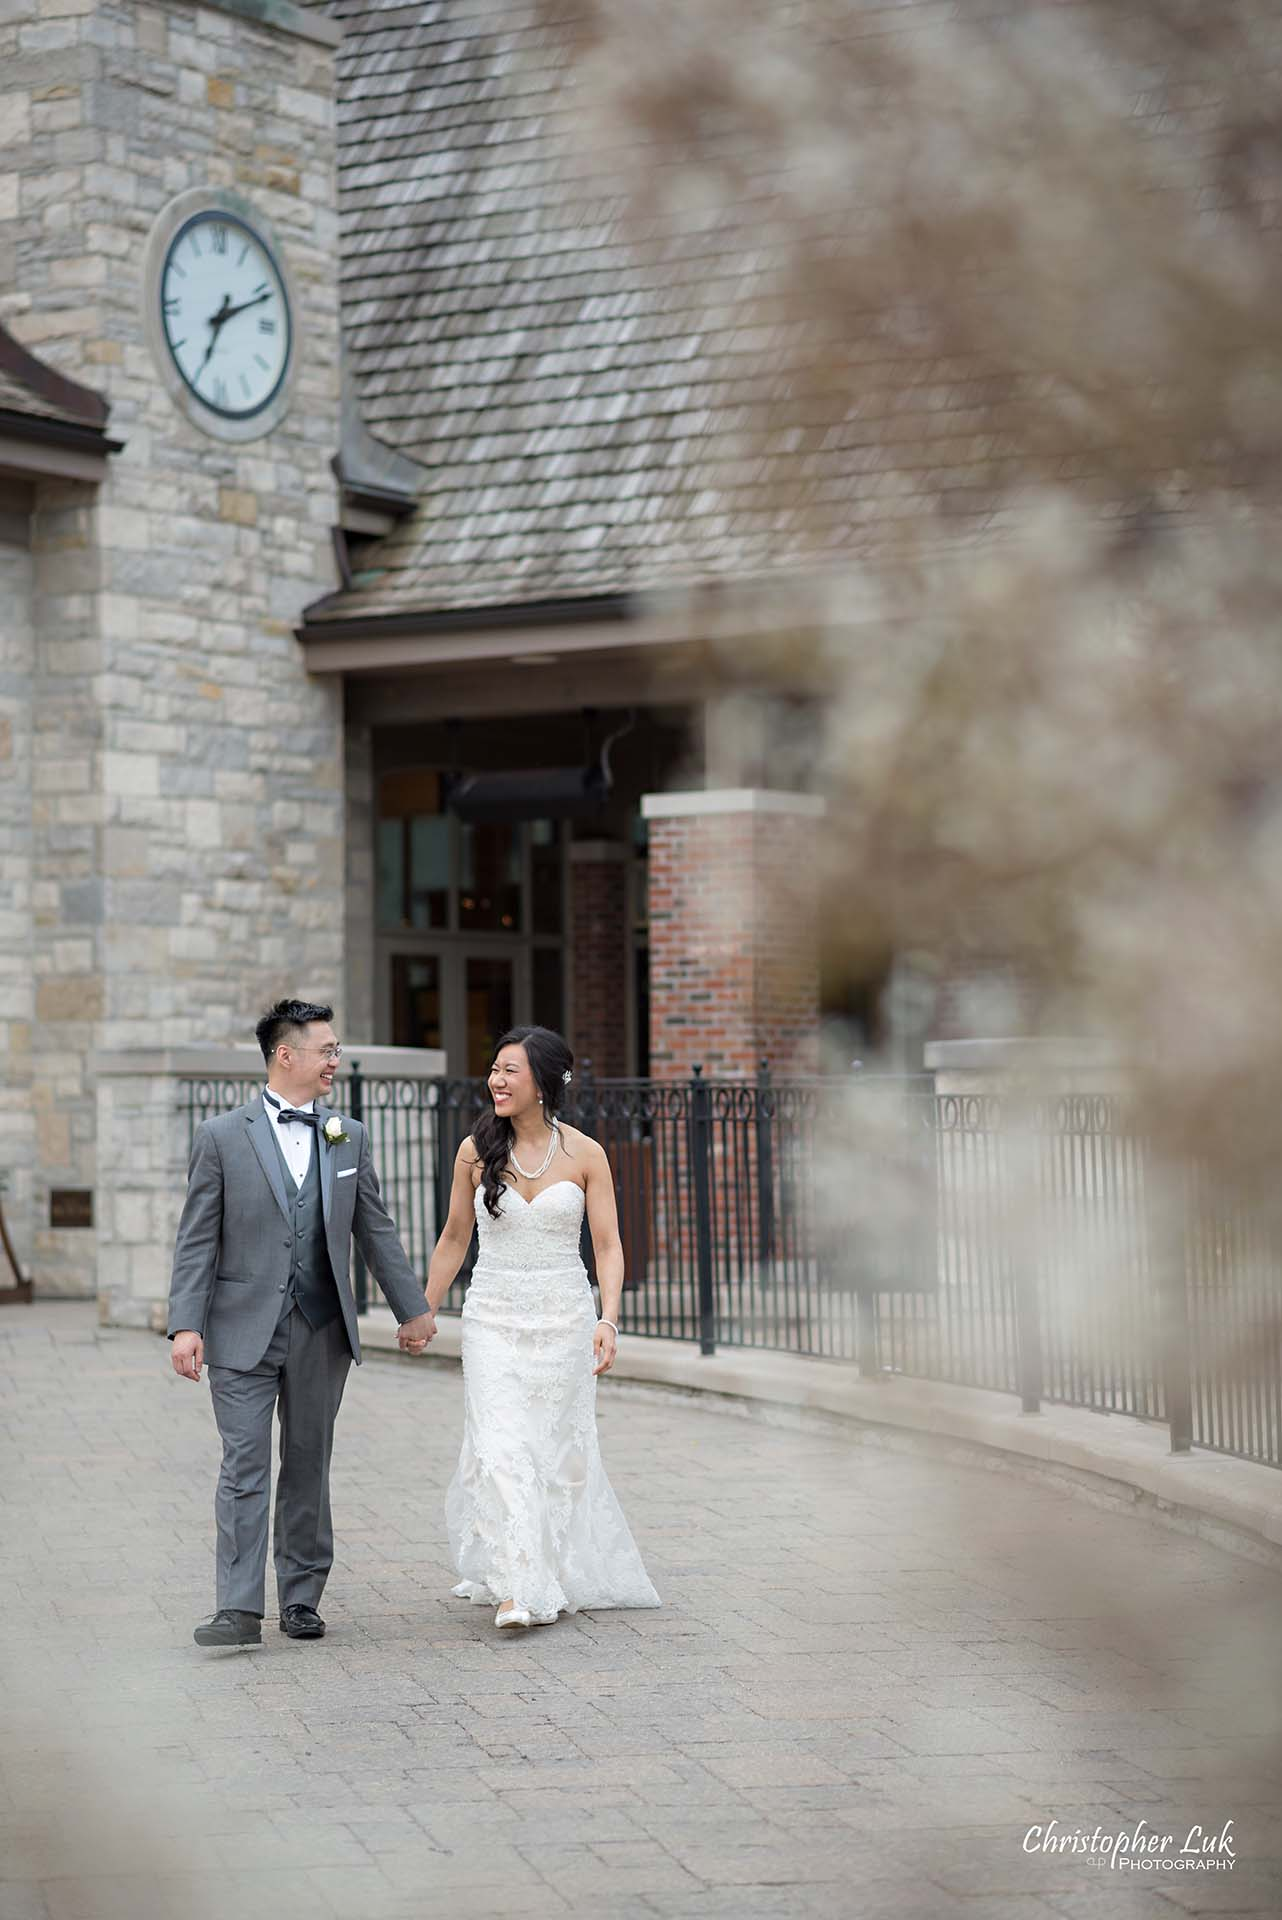 Christopher Luk Toronto Wedding Photographer Eagles Nest Golf Club Course Clubhouse Bride Groom Natural Candid Photojournalistic Holding Hands Walking Together Main Entrance Driveway Pathway